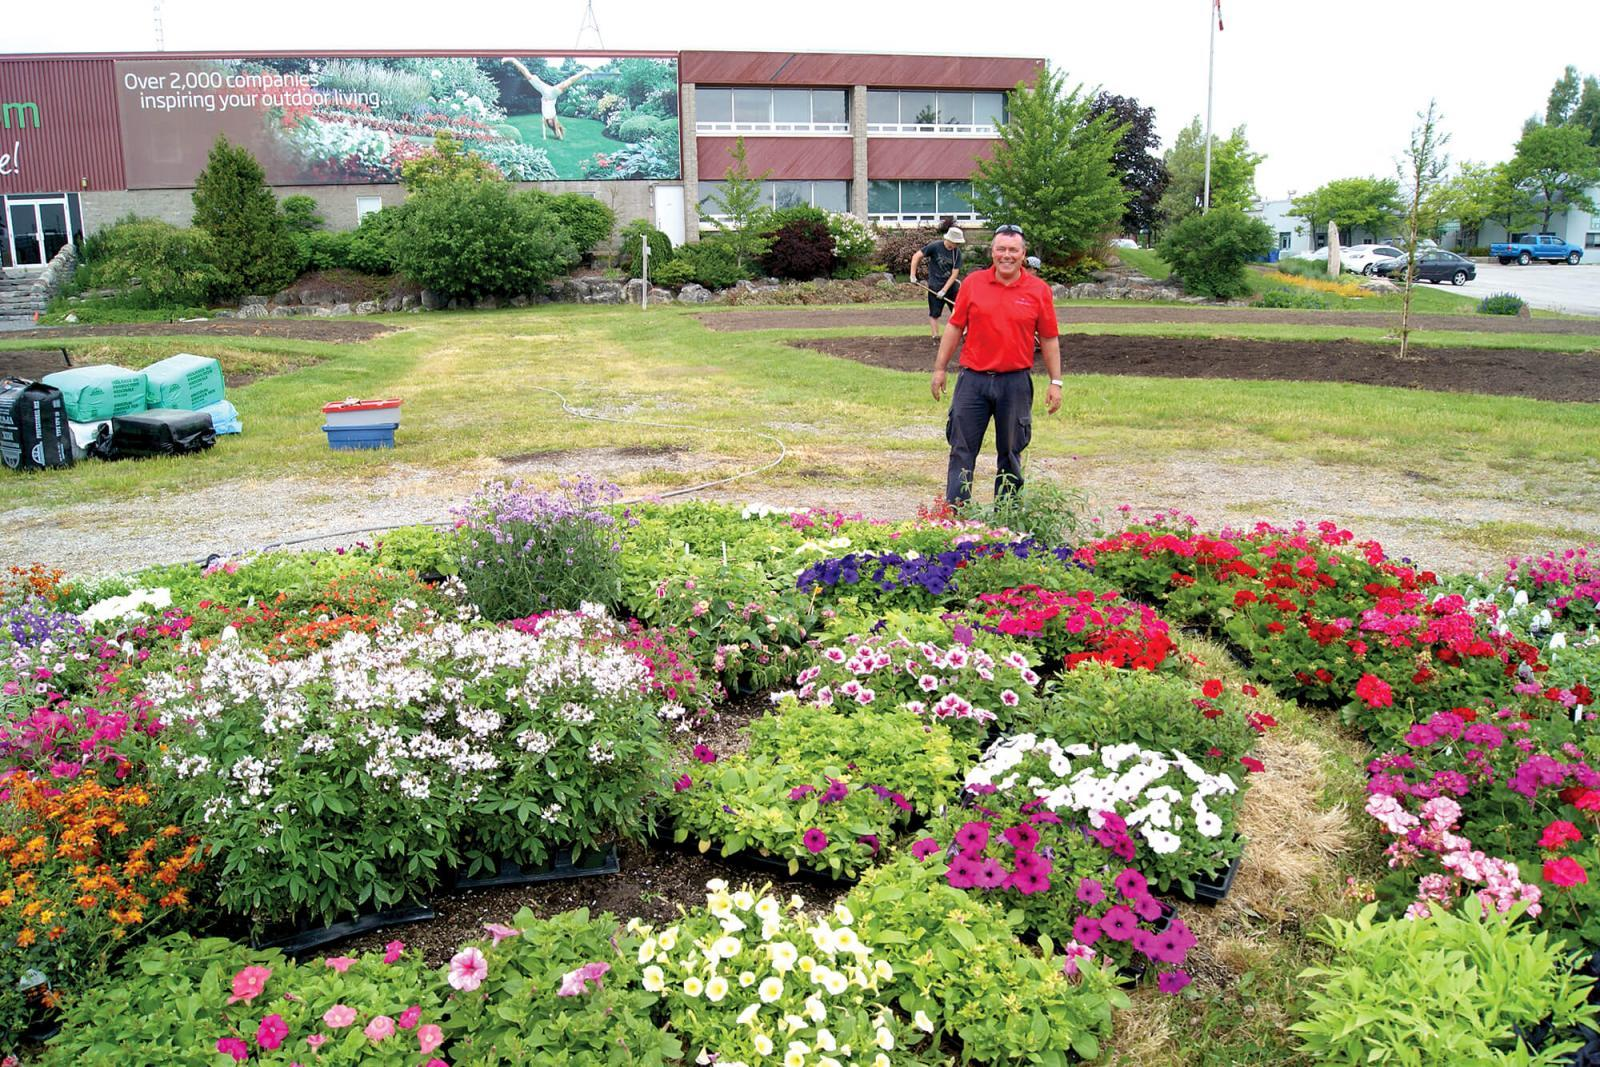 Trial Garden manager Rodger Tschanz prepares to plant the vast selection of new annuals this year.